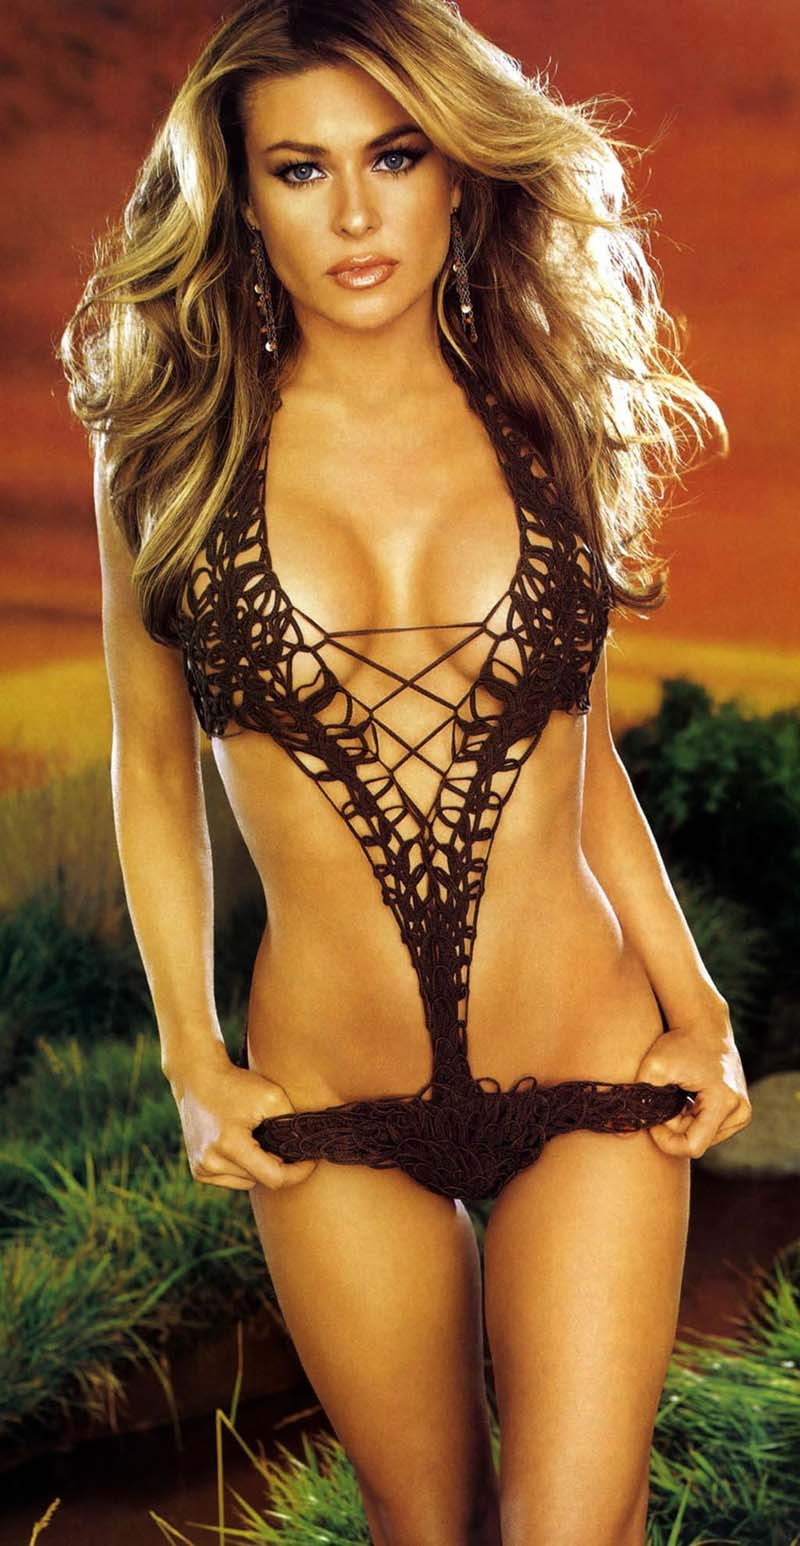 Carmen Electra hot photos (1)-min